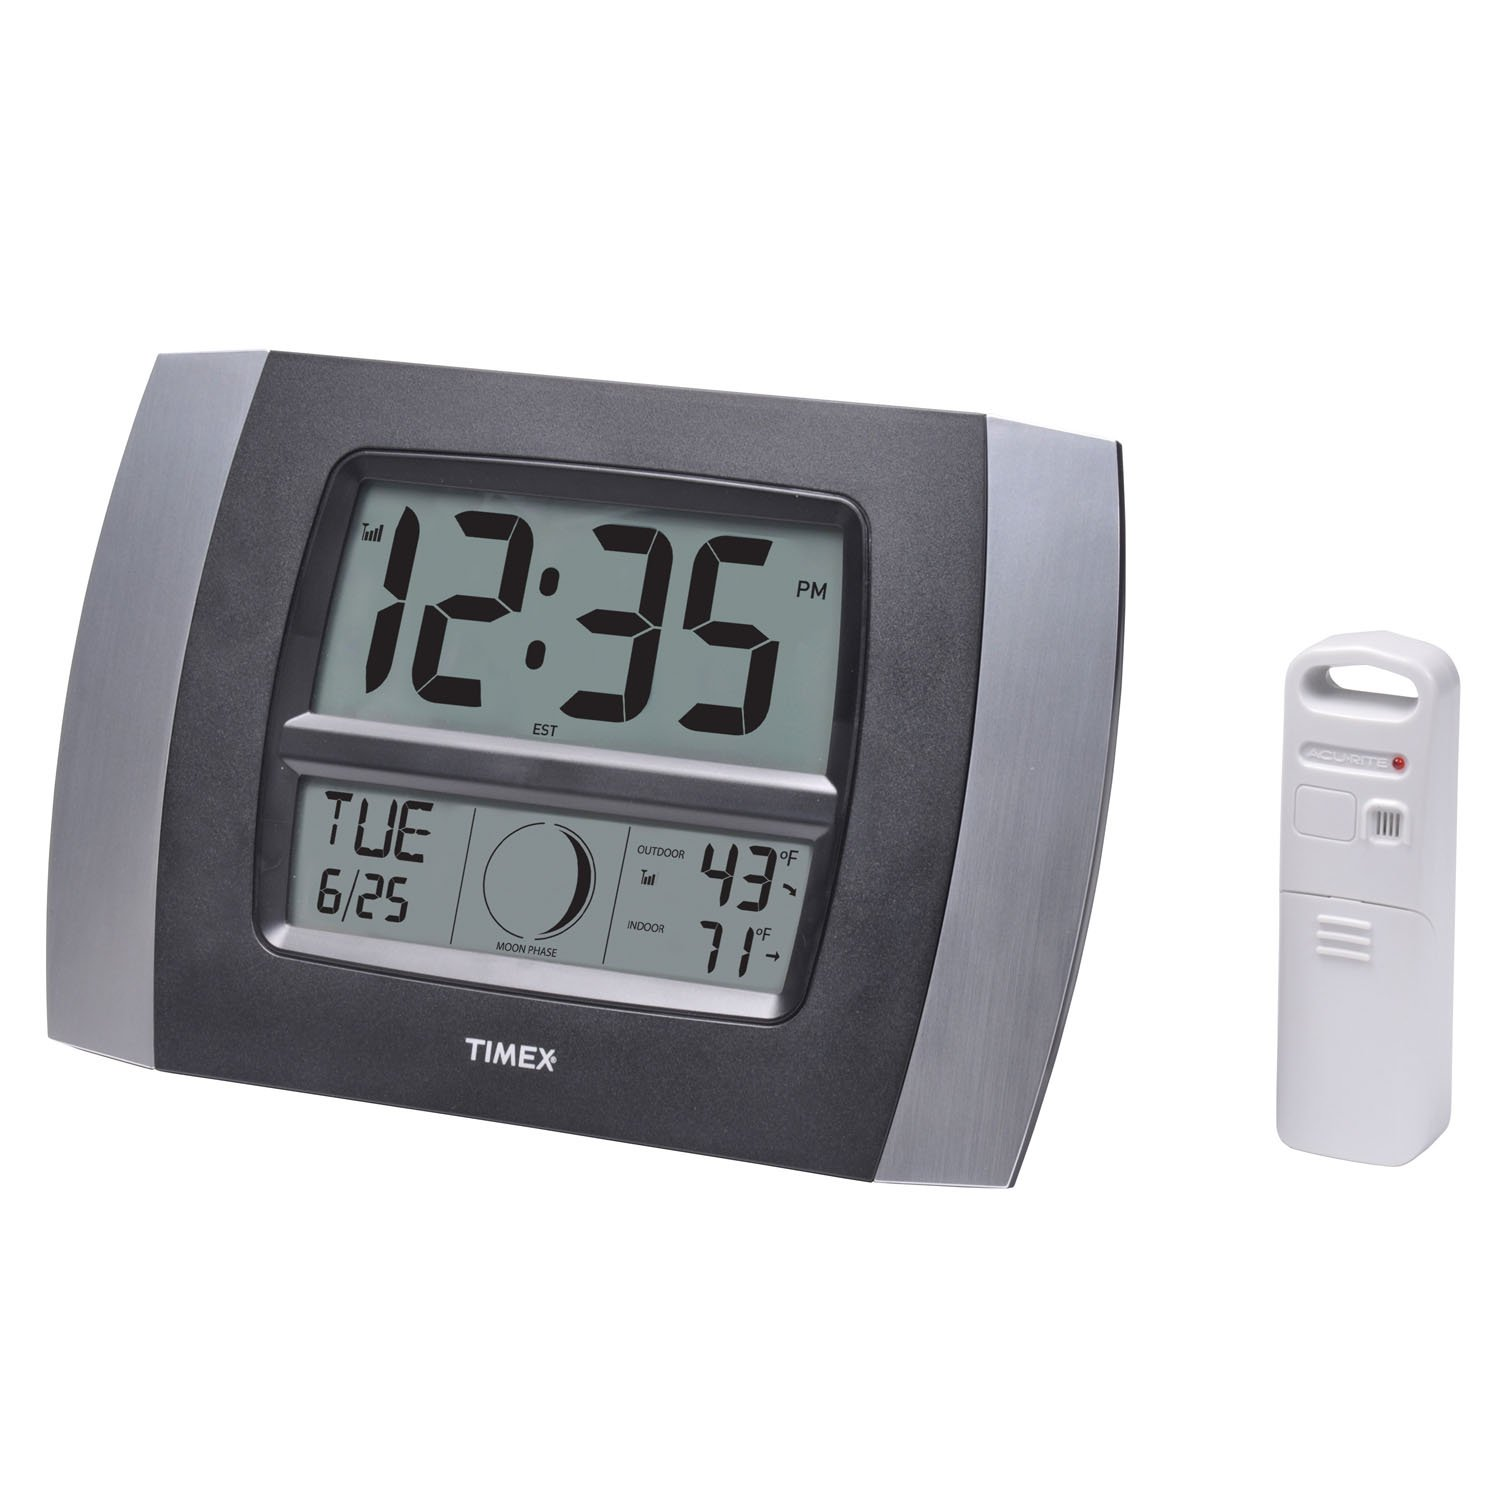 Amazon timex 75331t atomic digital clock with temperature amazon timex 75331t atomic digital clock with temperature moon phase calendar 115 home kitchen amipublicfo Images